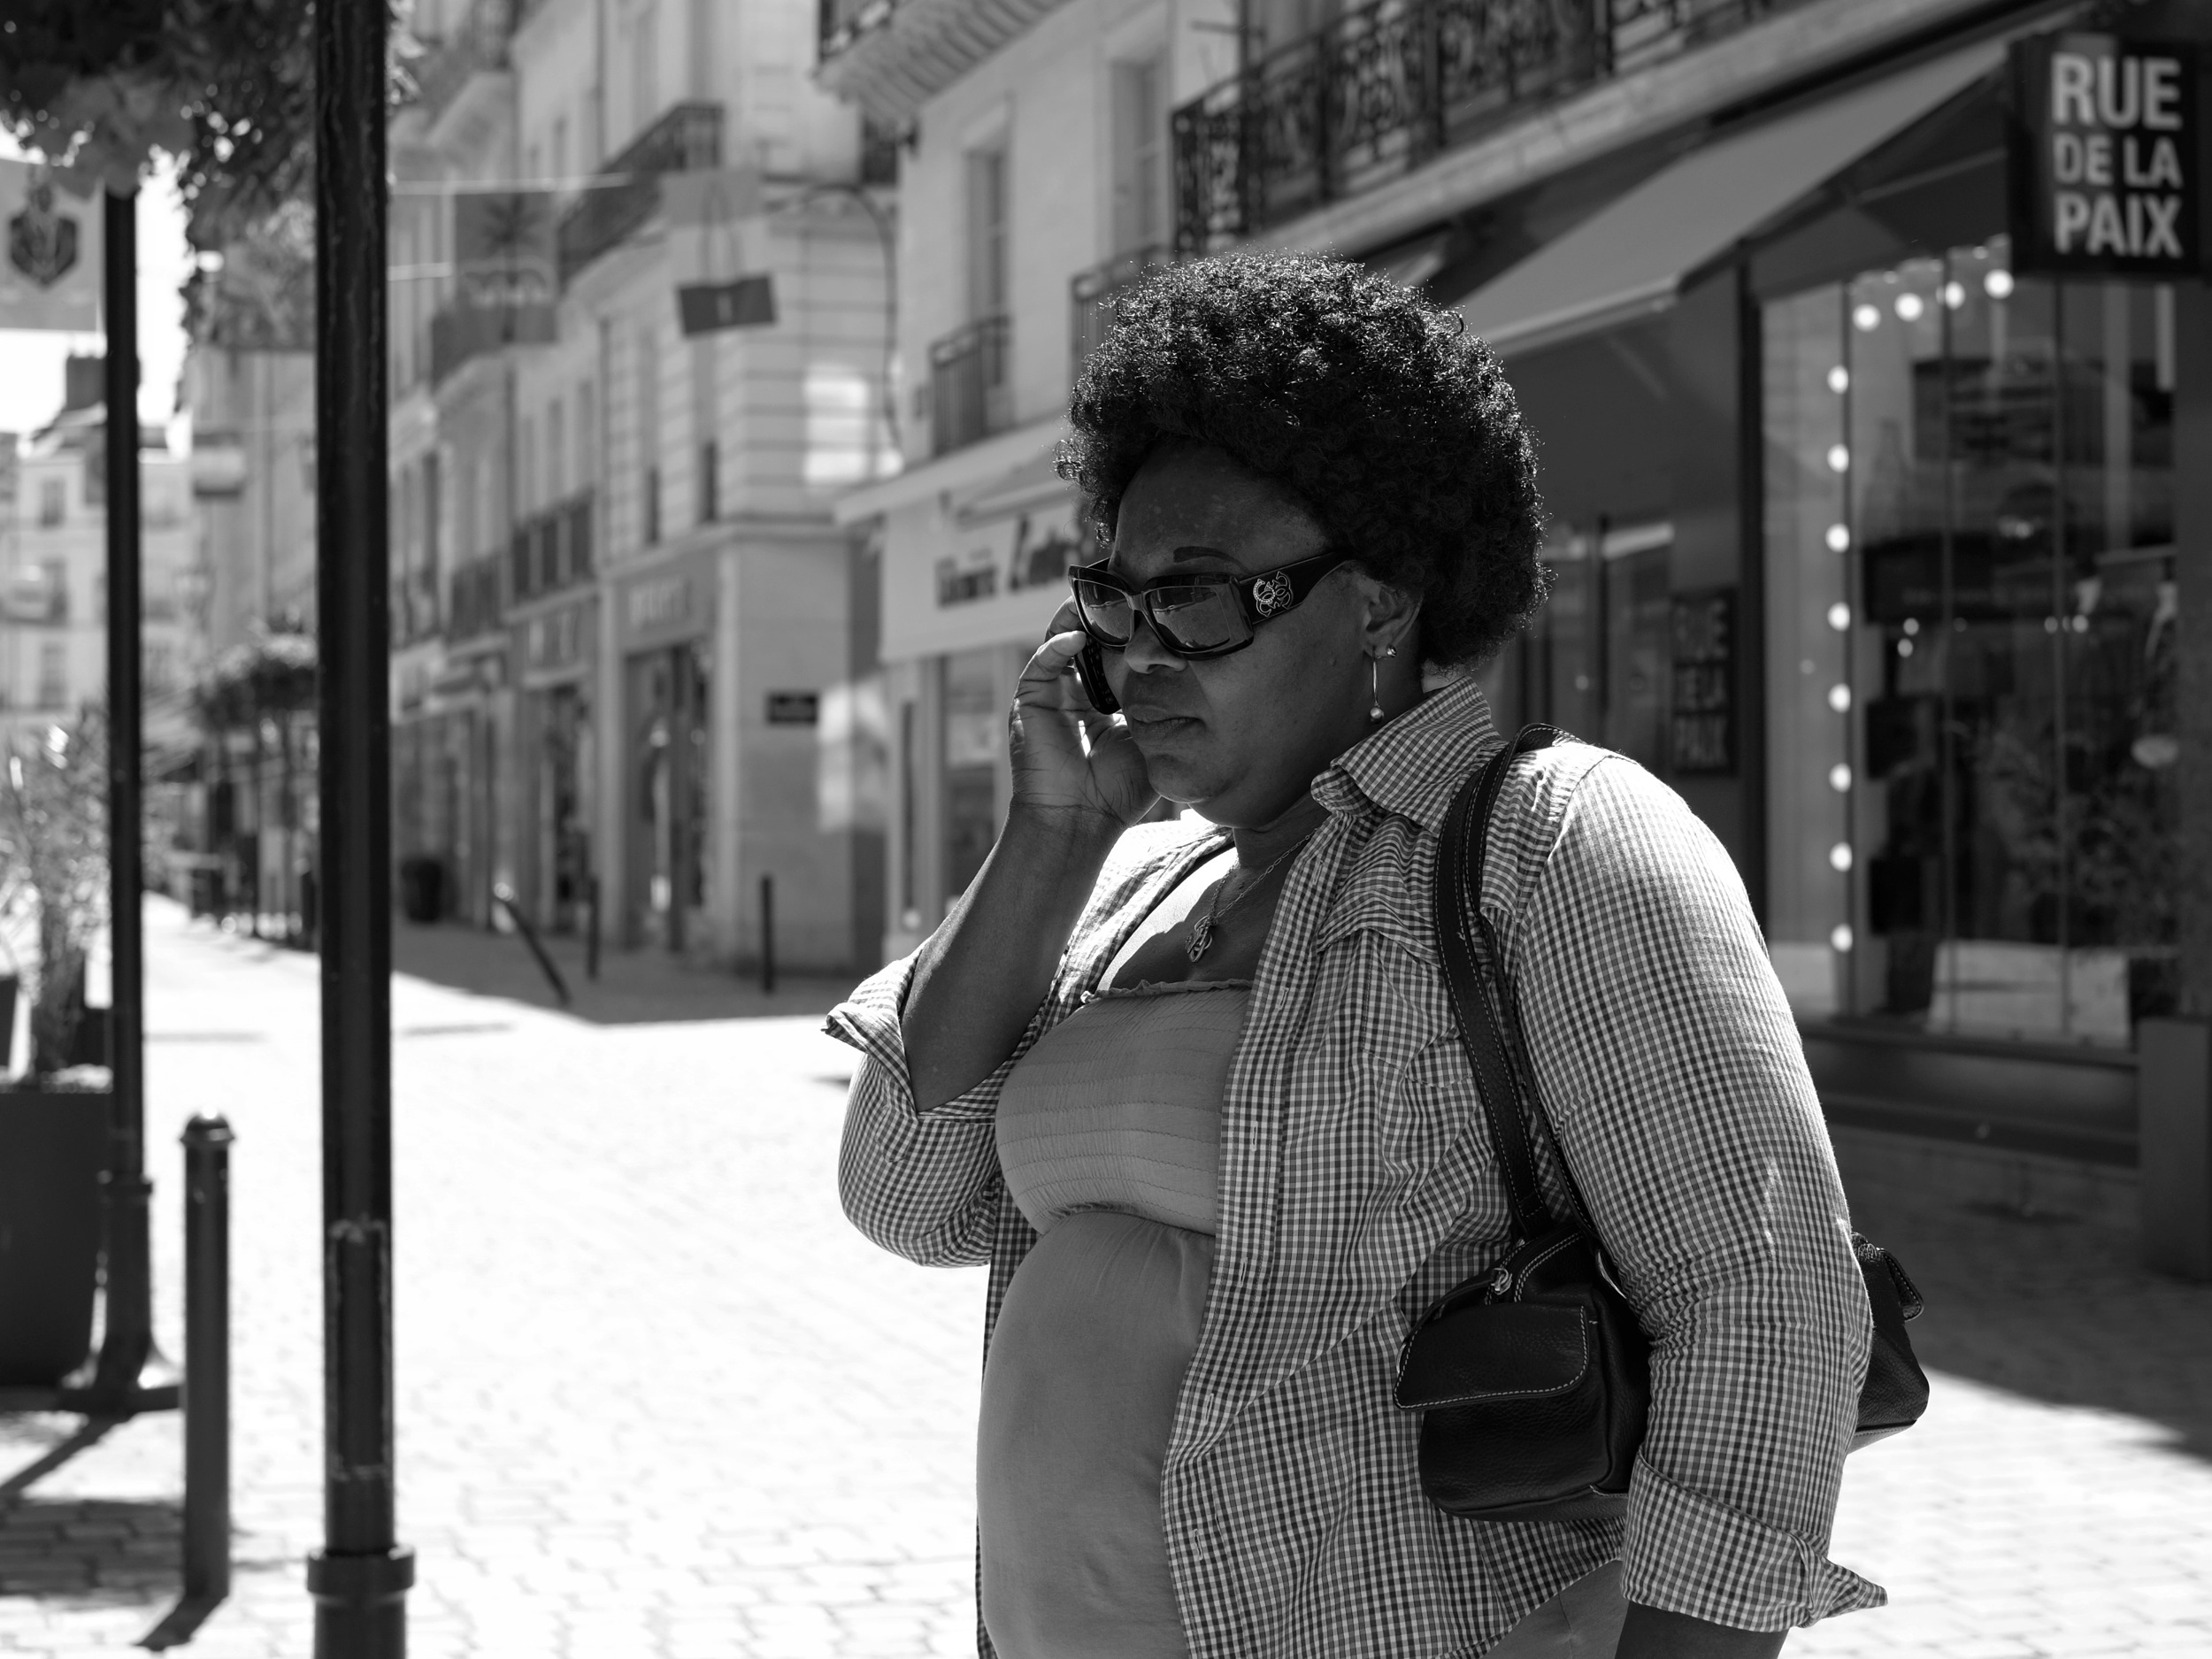 Women with phone and sunglasses in Nantes - Fuji X-Pro1